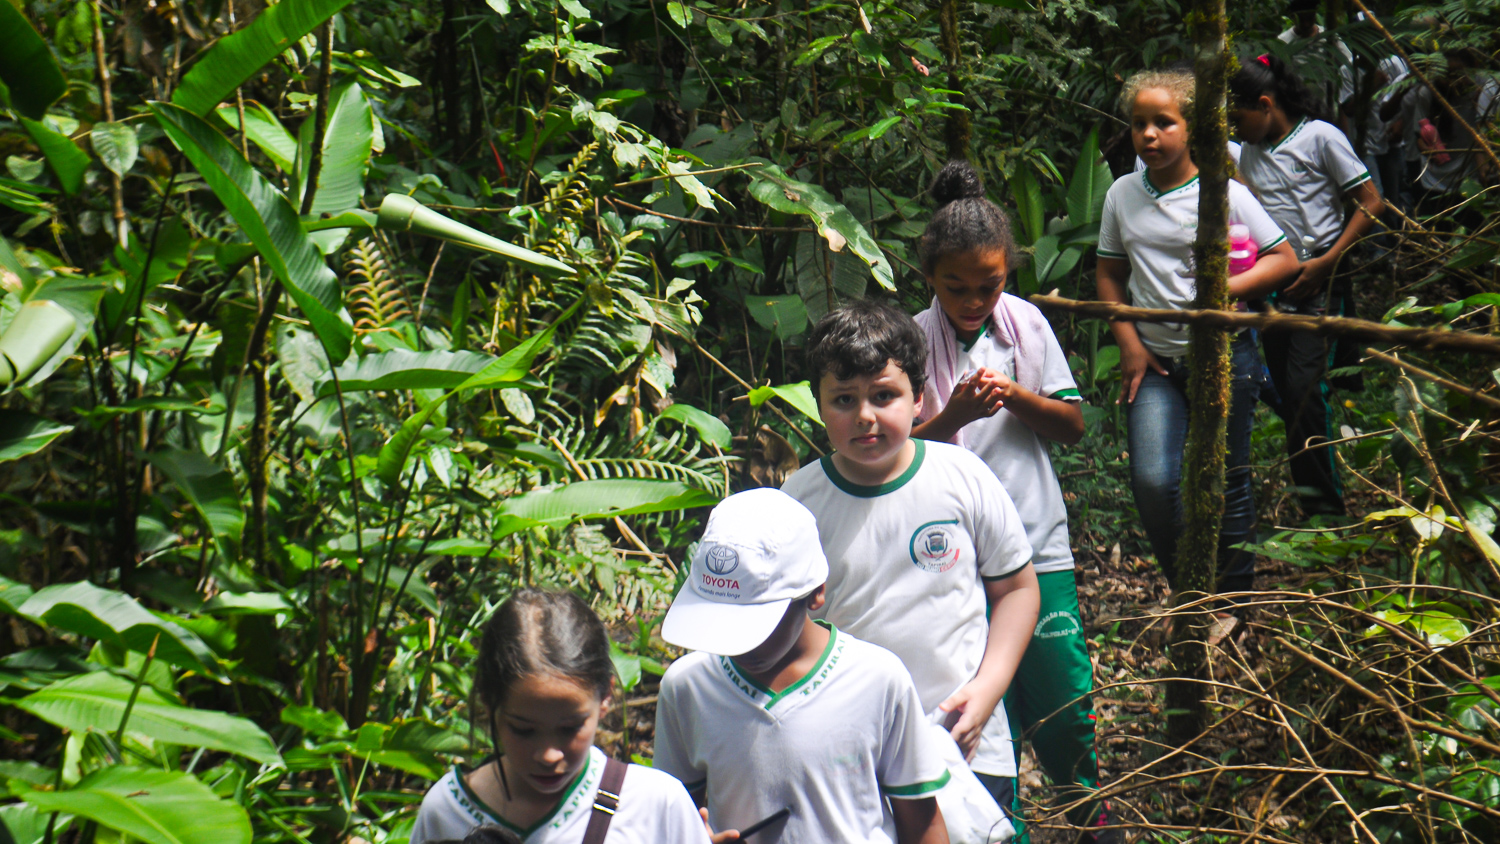 Children's environmental education